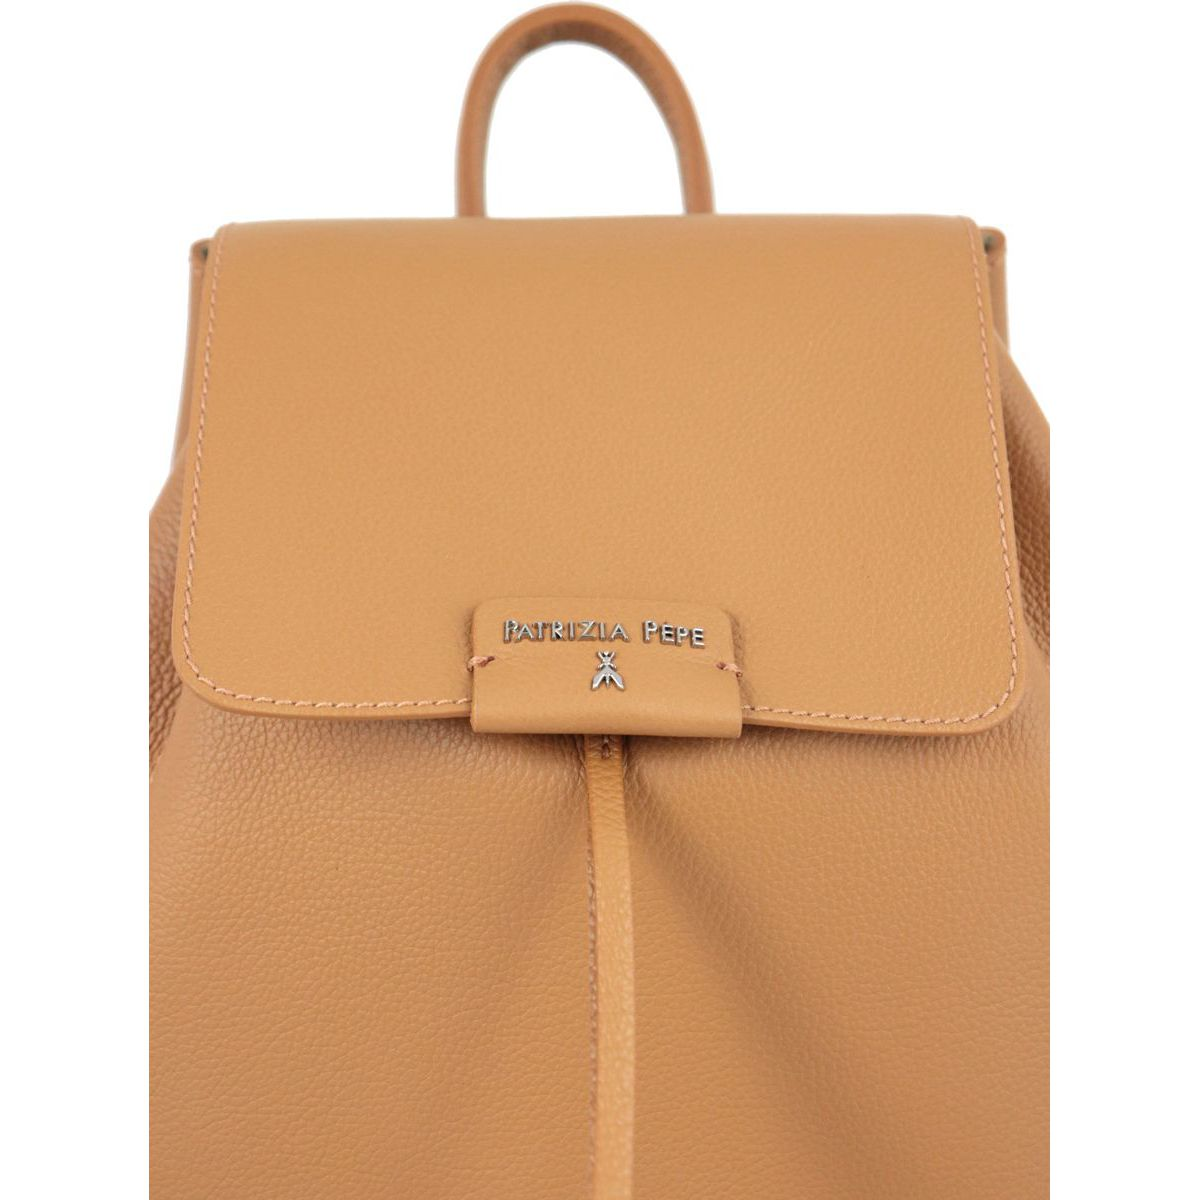 Textured leather backpack with logo Leather Patrizia Pepe